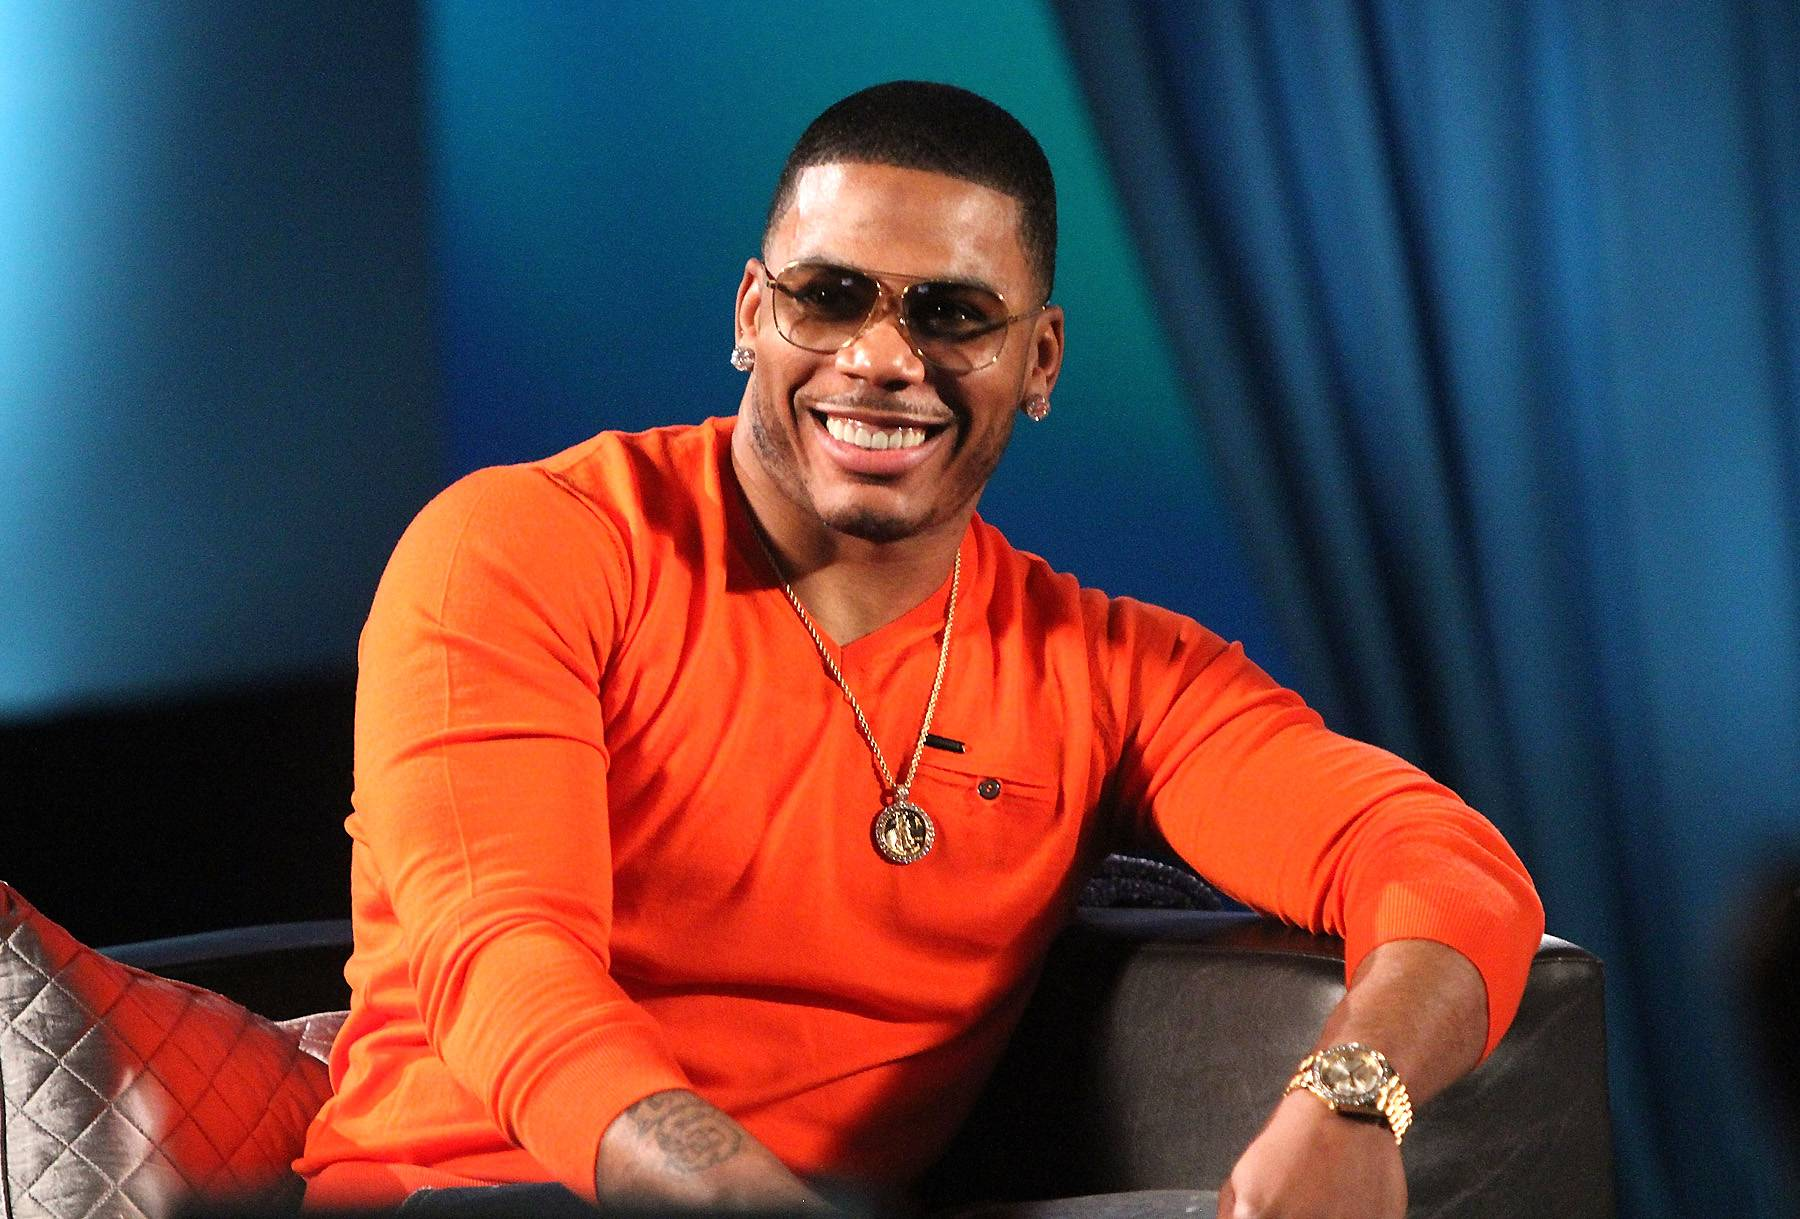 Up to Something - What's Nelly about to do?  (Photo: Maury Phillips/WireImage)